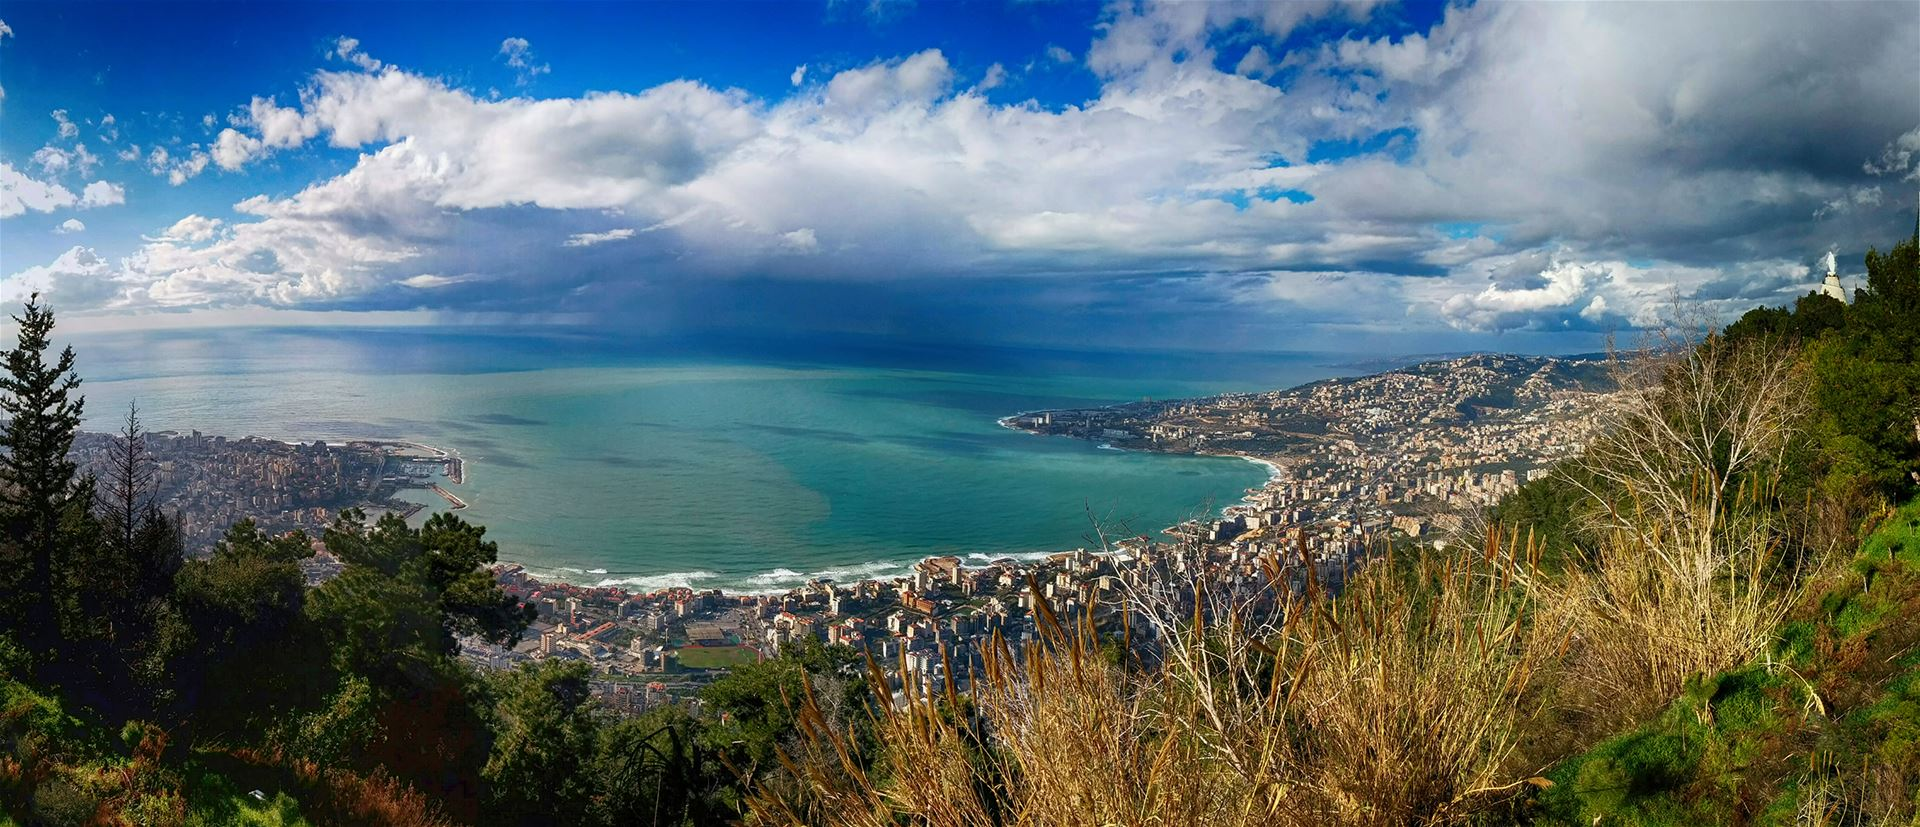 View of Jounieh Bay from Harissa